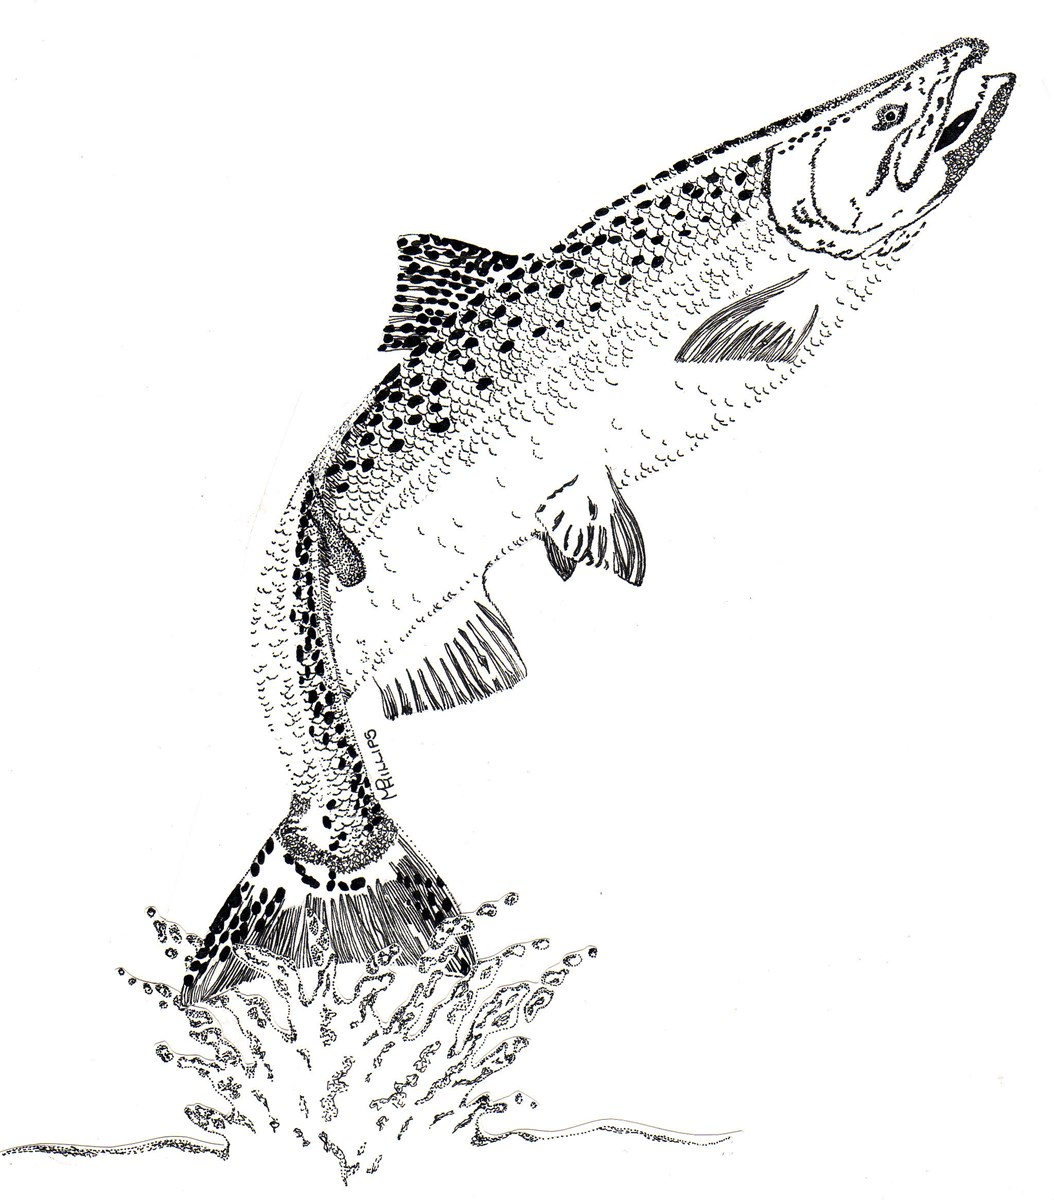 A black and white drawing of a salmon leaping